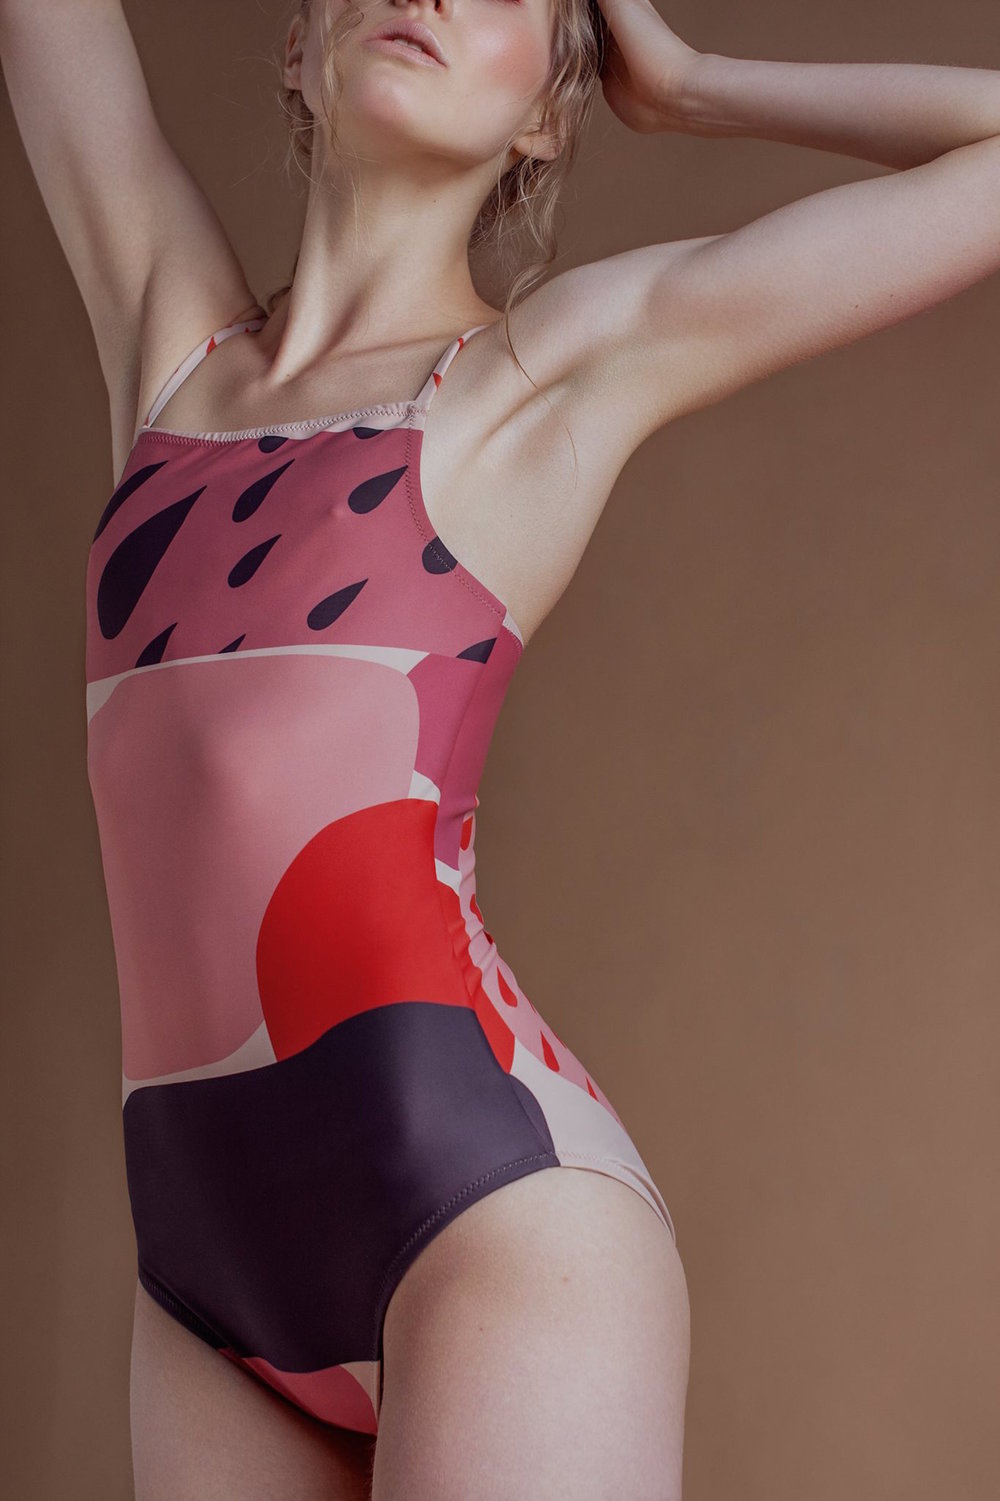 playful-swimwear-looks-like-body-paintings-by-collar-thatsitmag2.jpeg